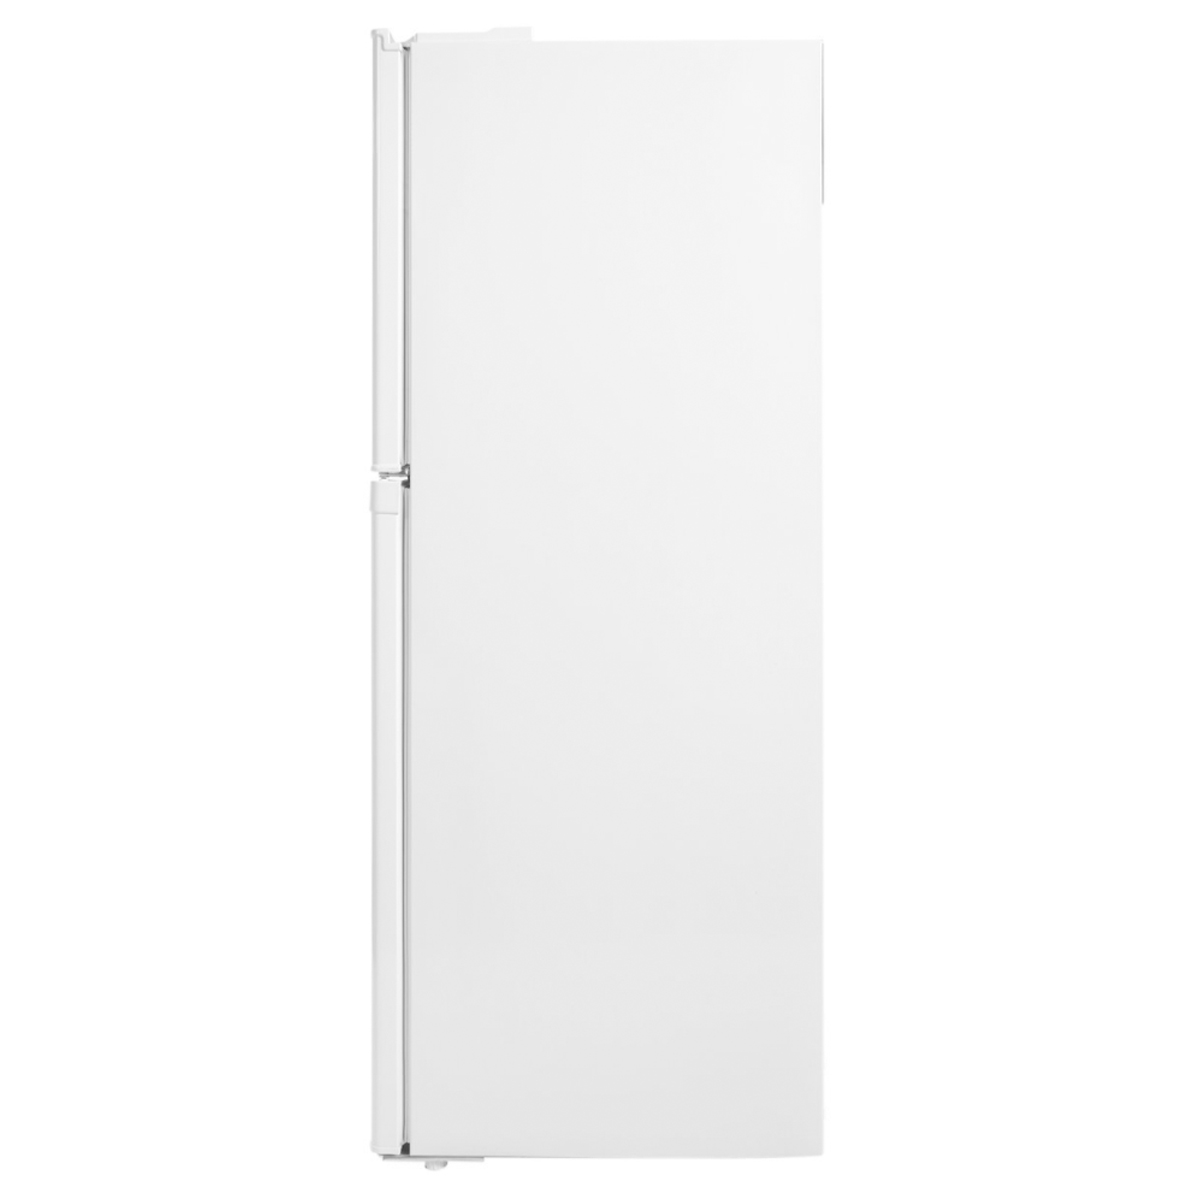 Lemair LTM221W 221Litres Top Mount Fridge 104749